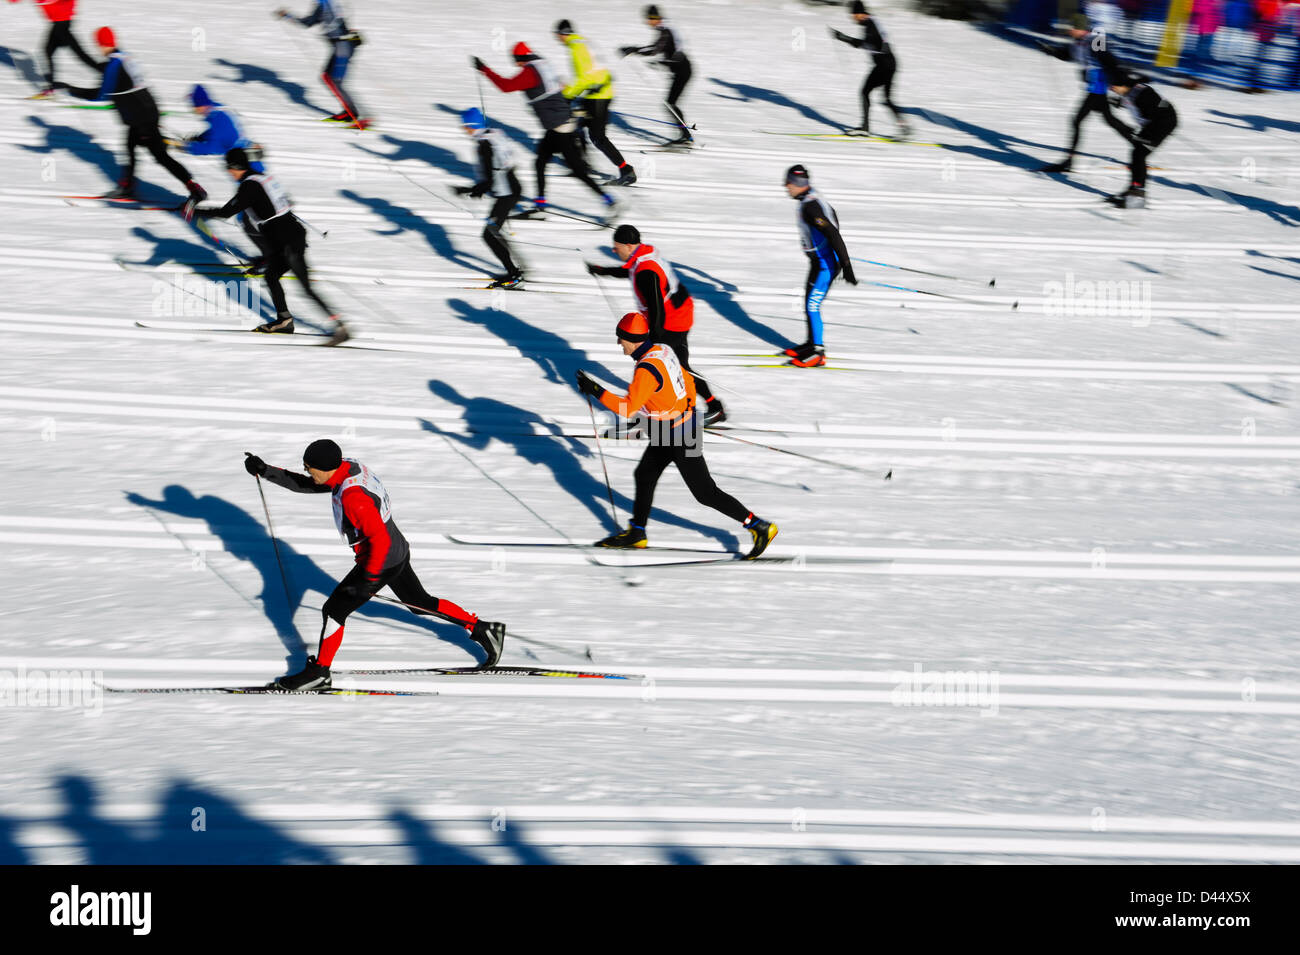 Participants at the Bieg Piastow cross-country race, Jakuszyce, Poland. - Stock Image